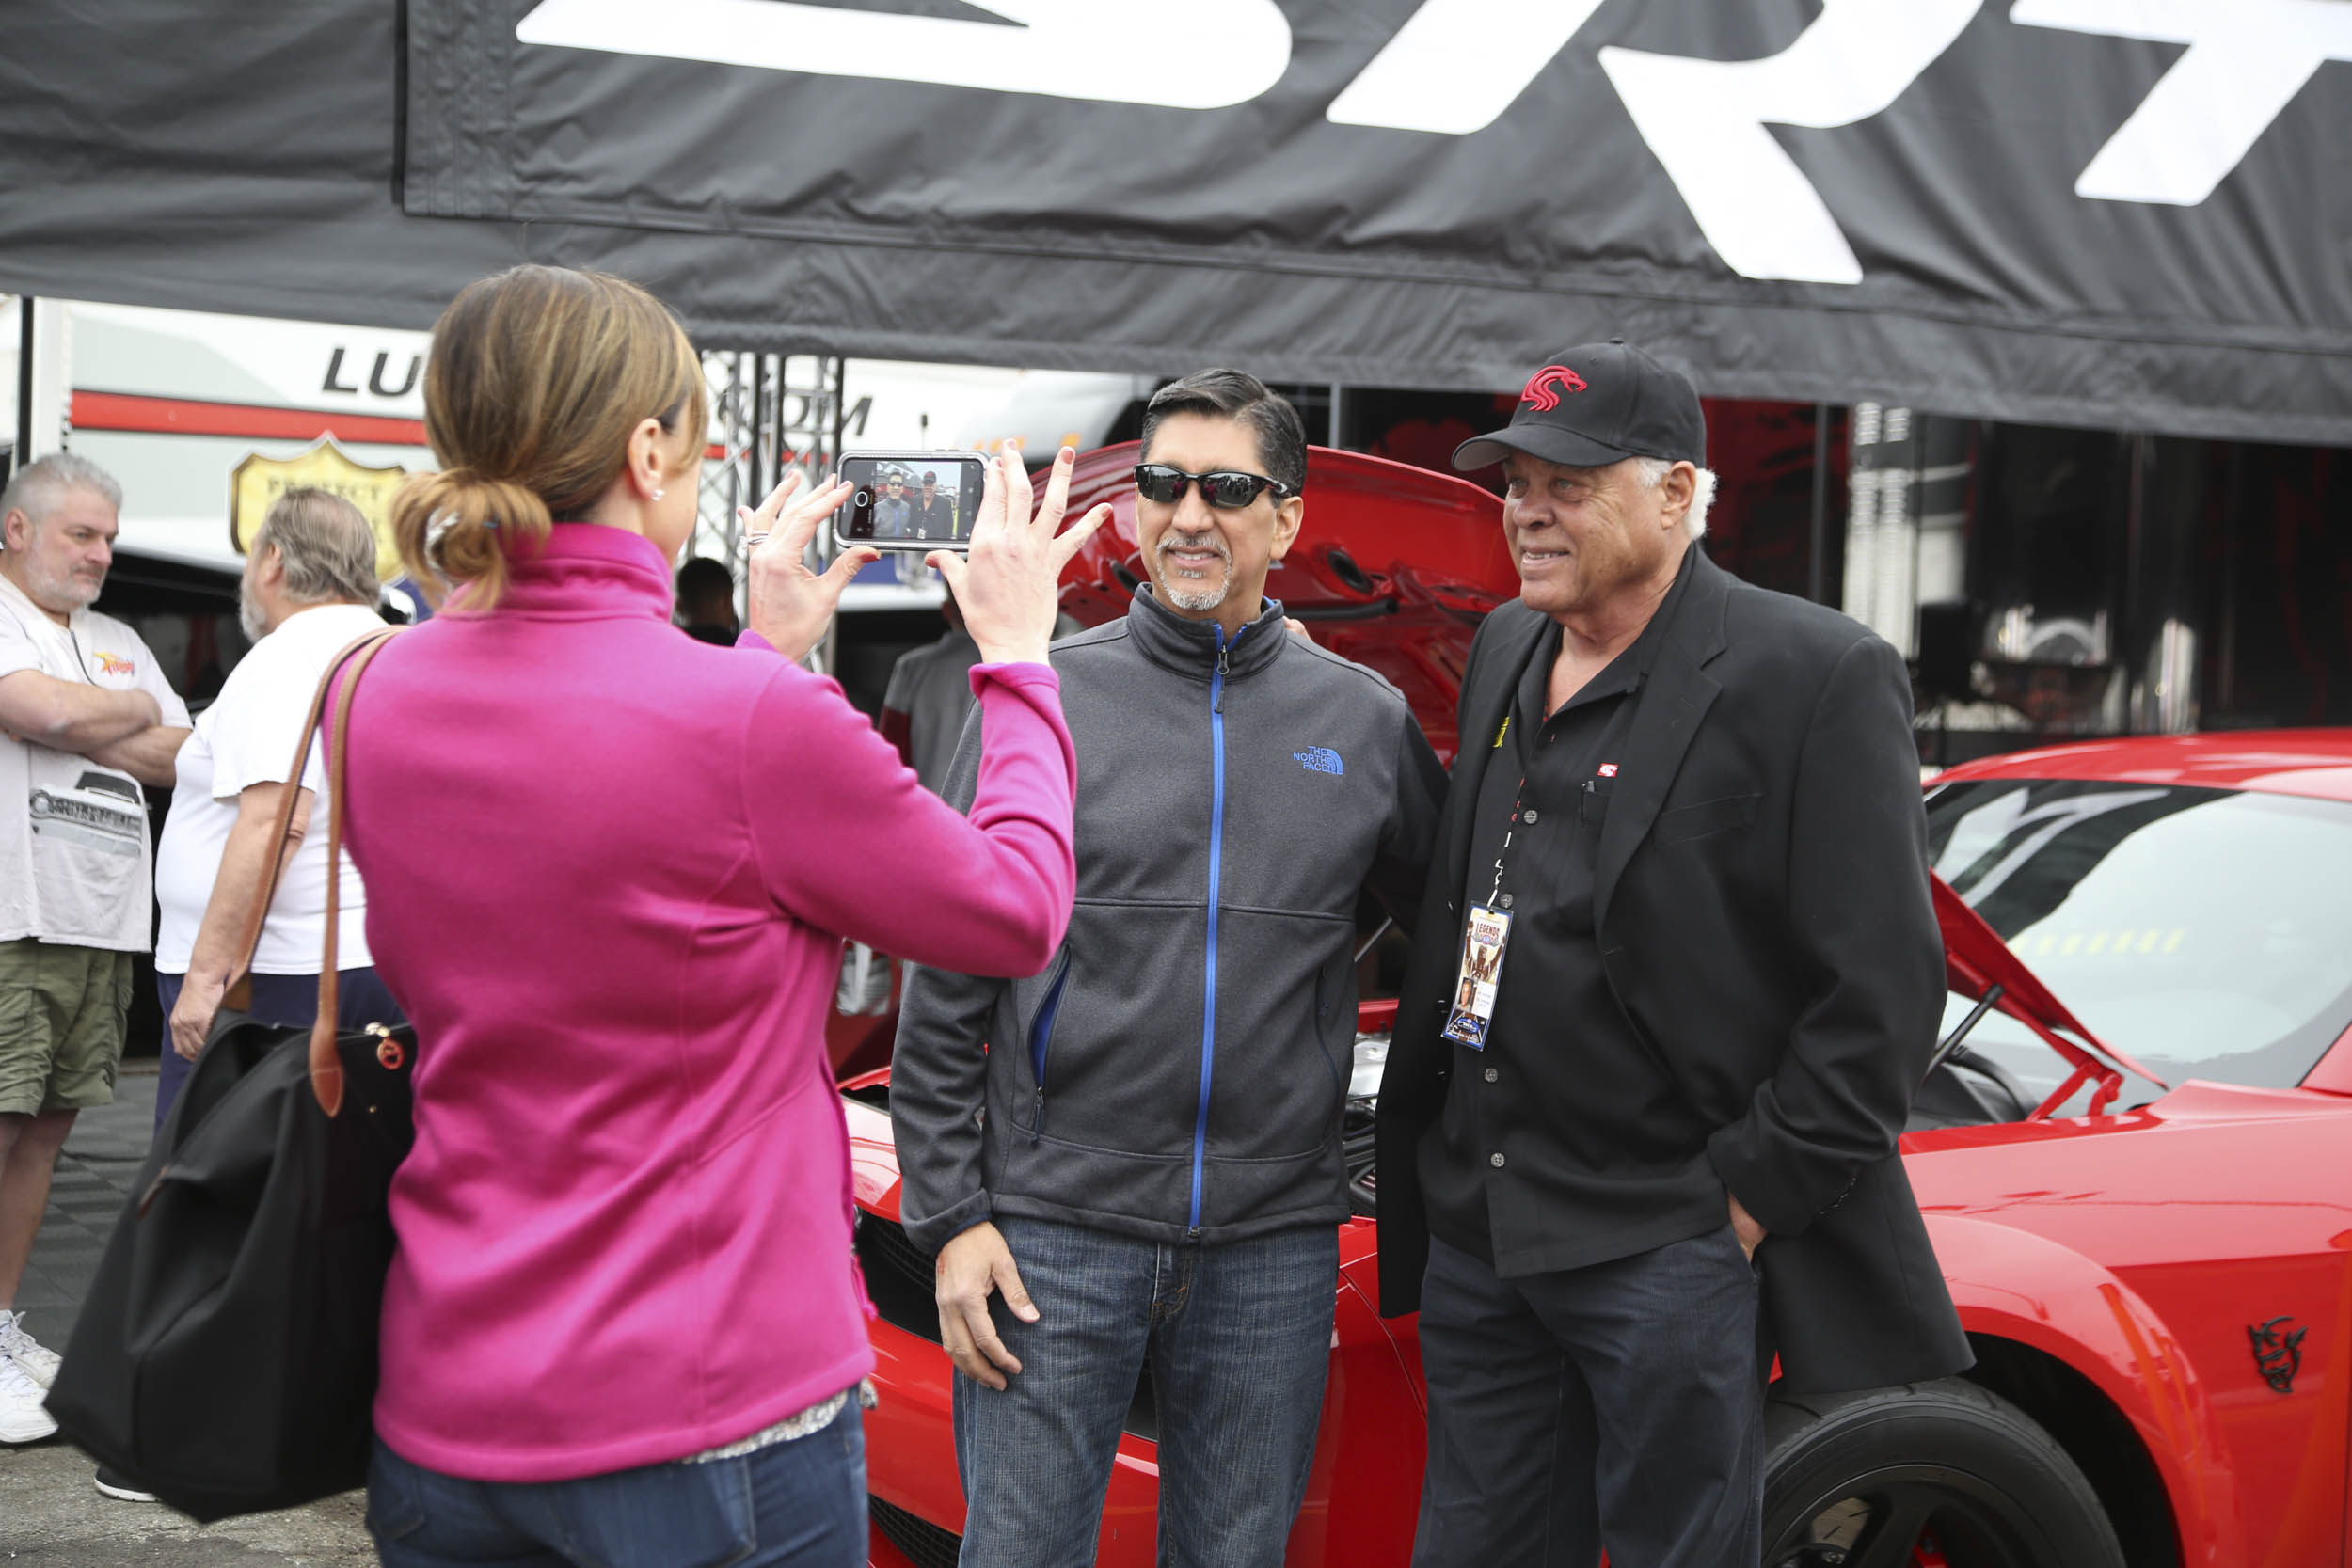 Prudhomme was one of the first names on the list to purchase a 2018 Dodge Demon. He got serial number 049 in honor of his 49 victories as a driver.